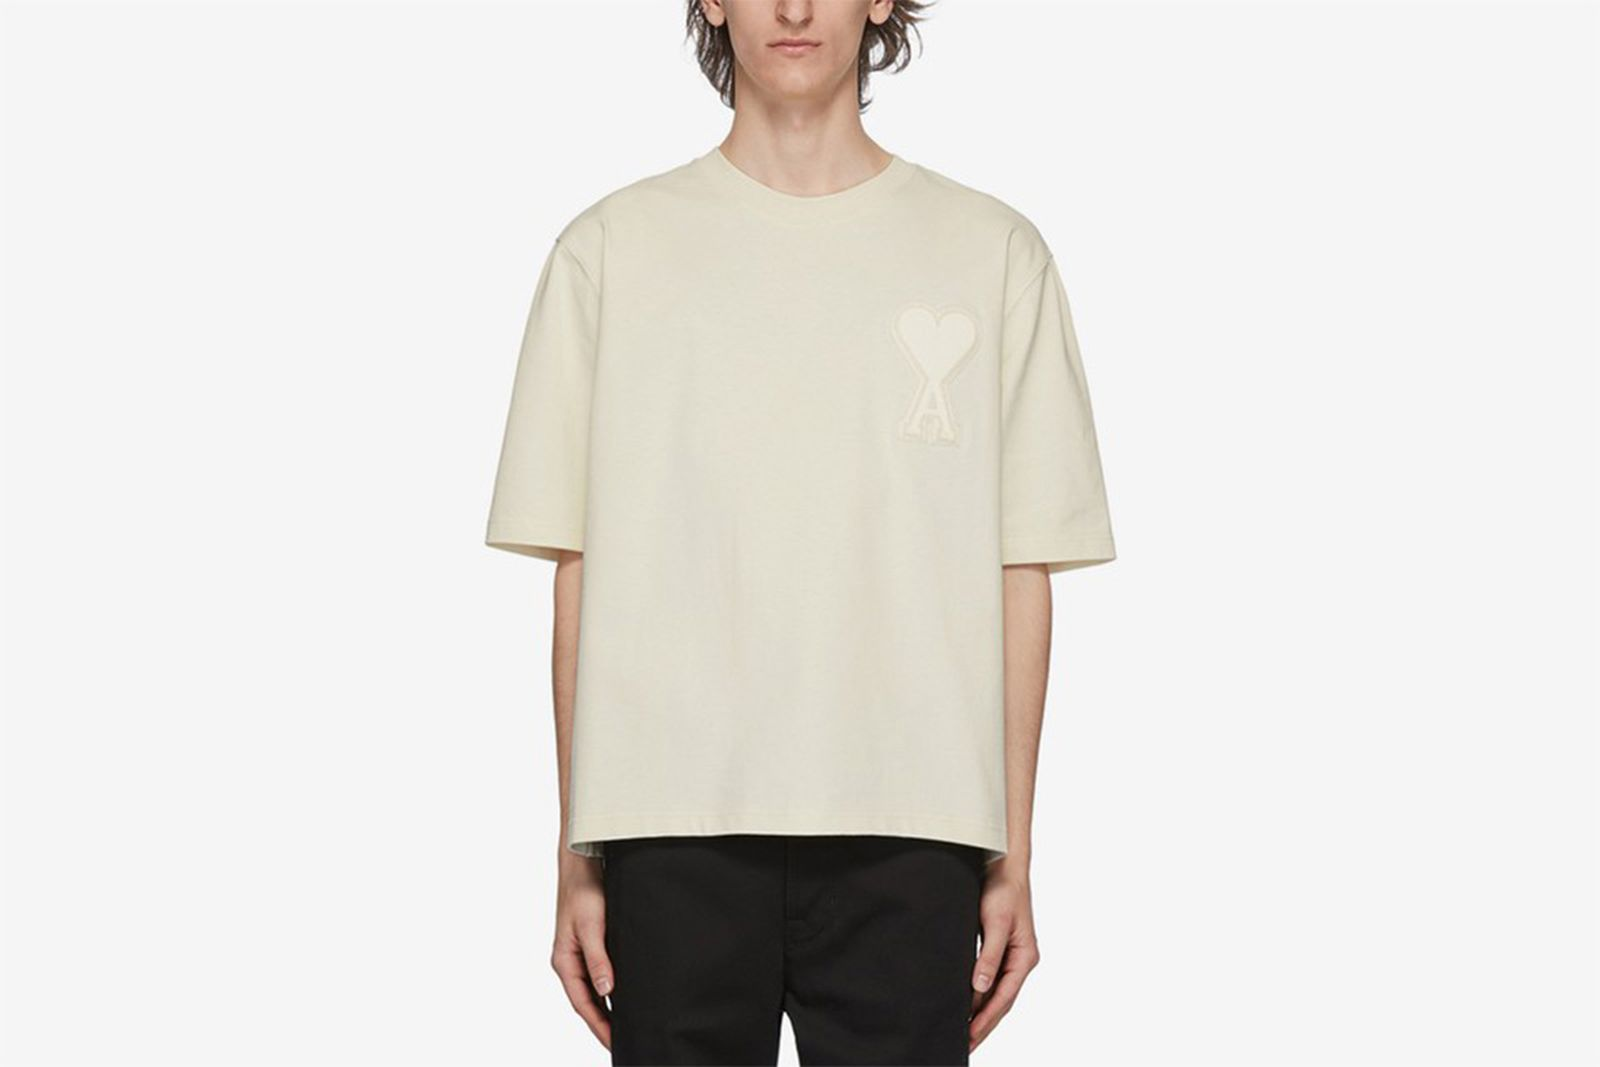 off-white t shirts